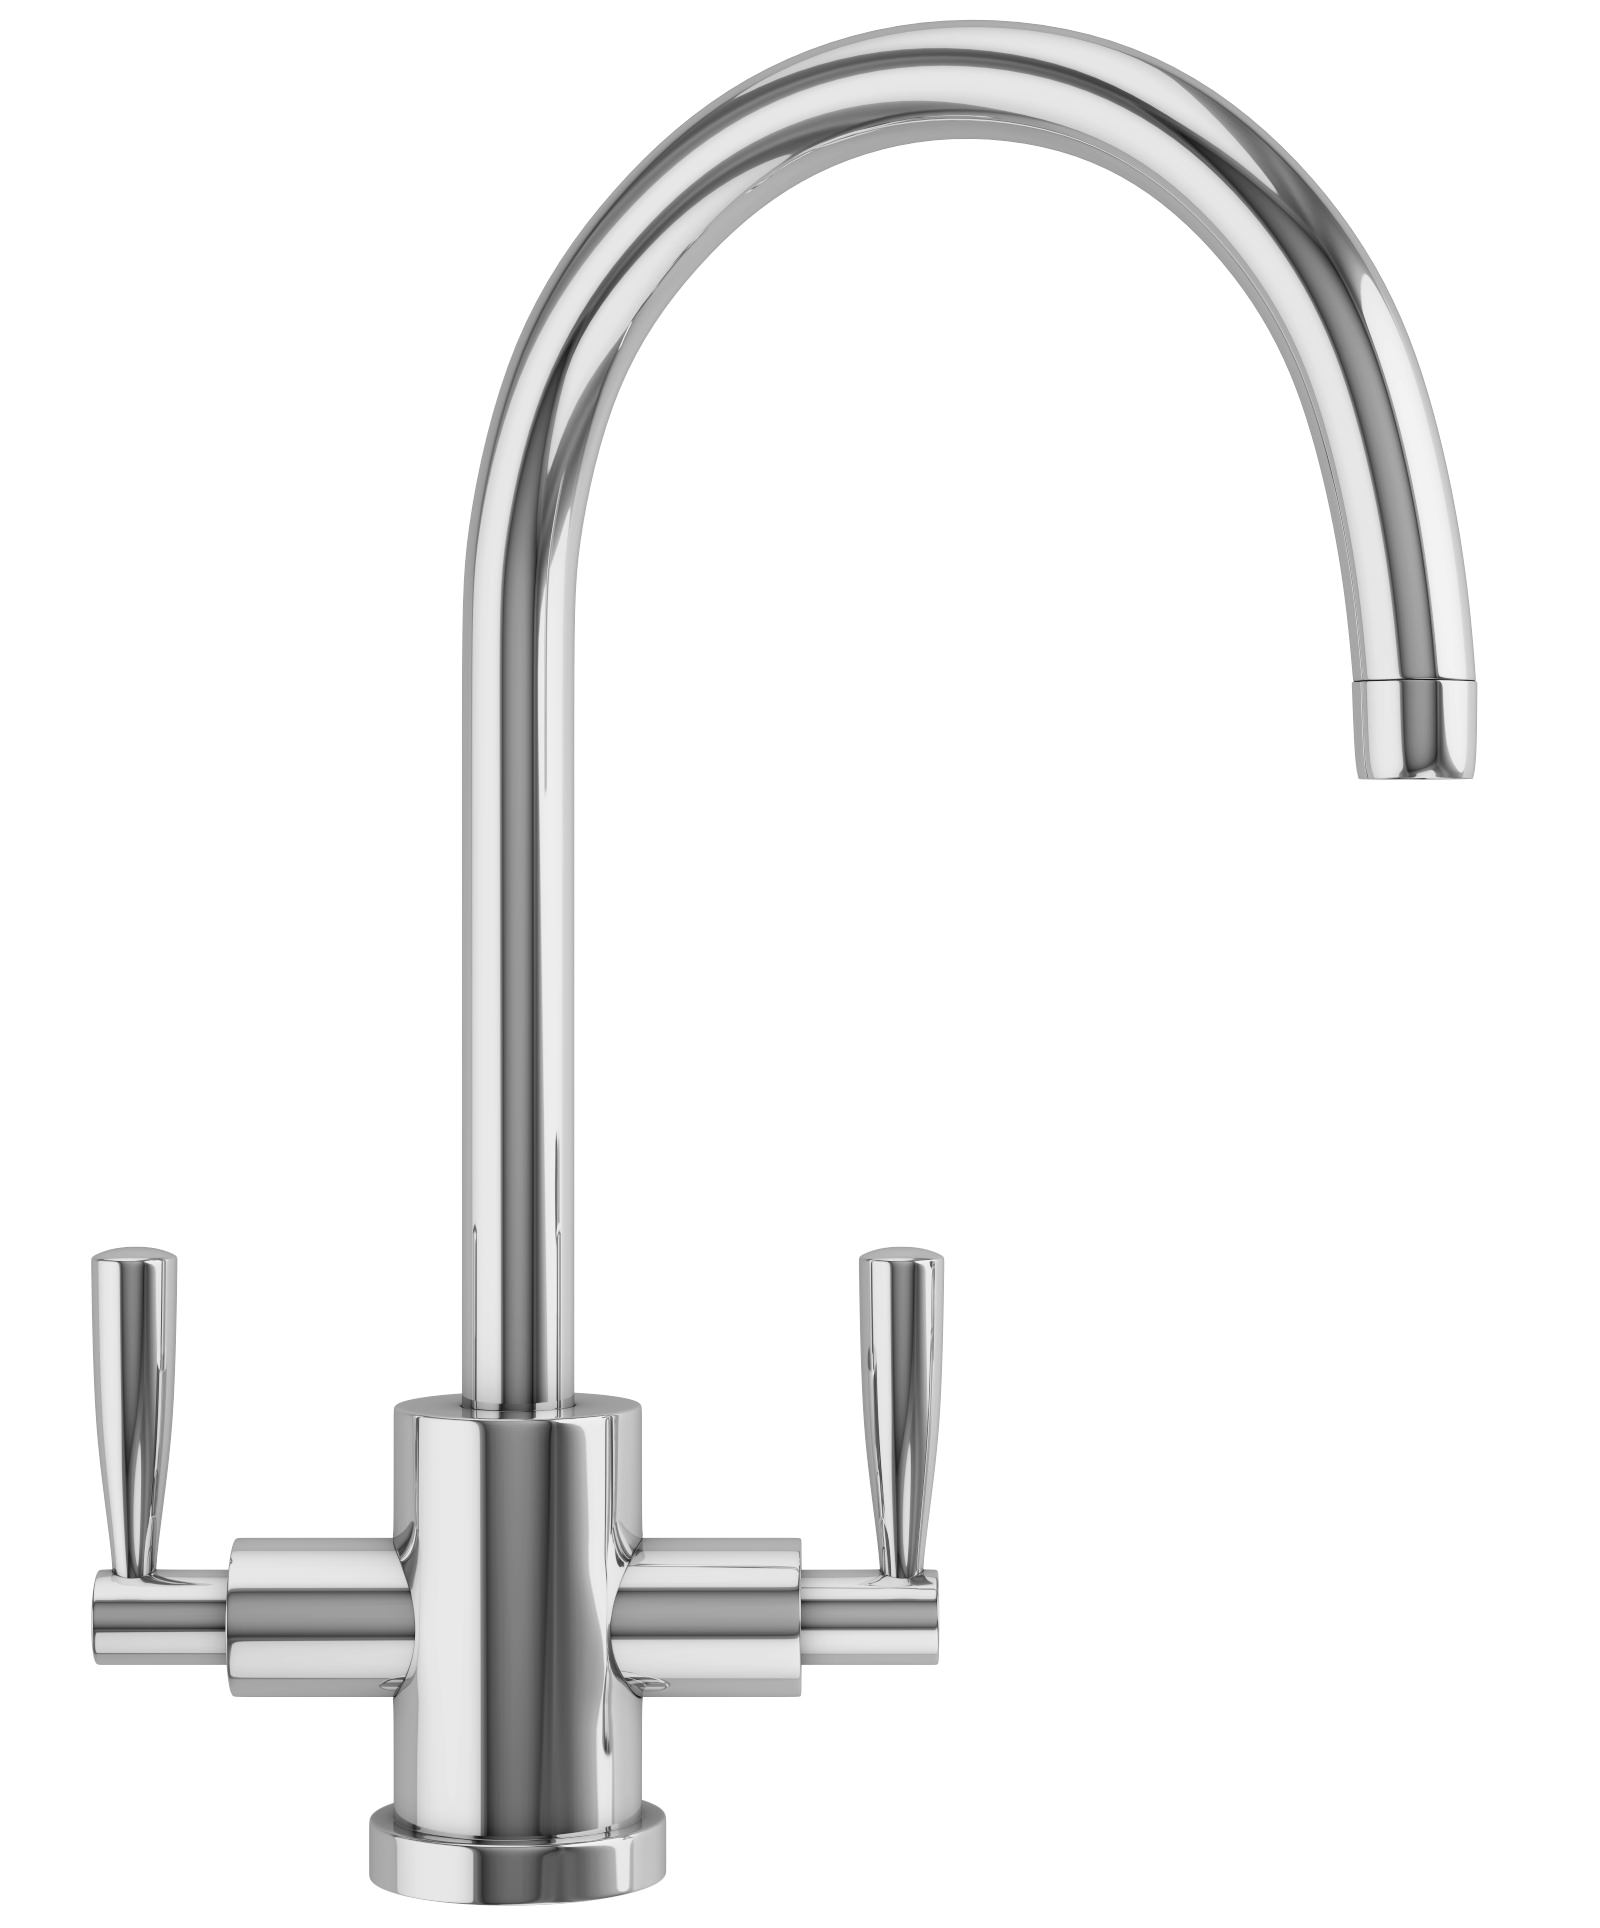 ... taps kitchen mixer taps franke olympus kitchen sink mixer tap chrome